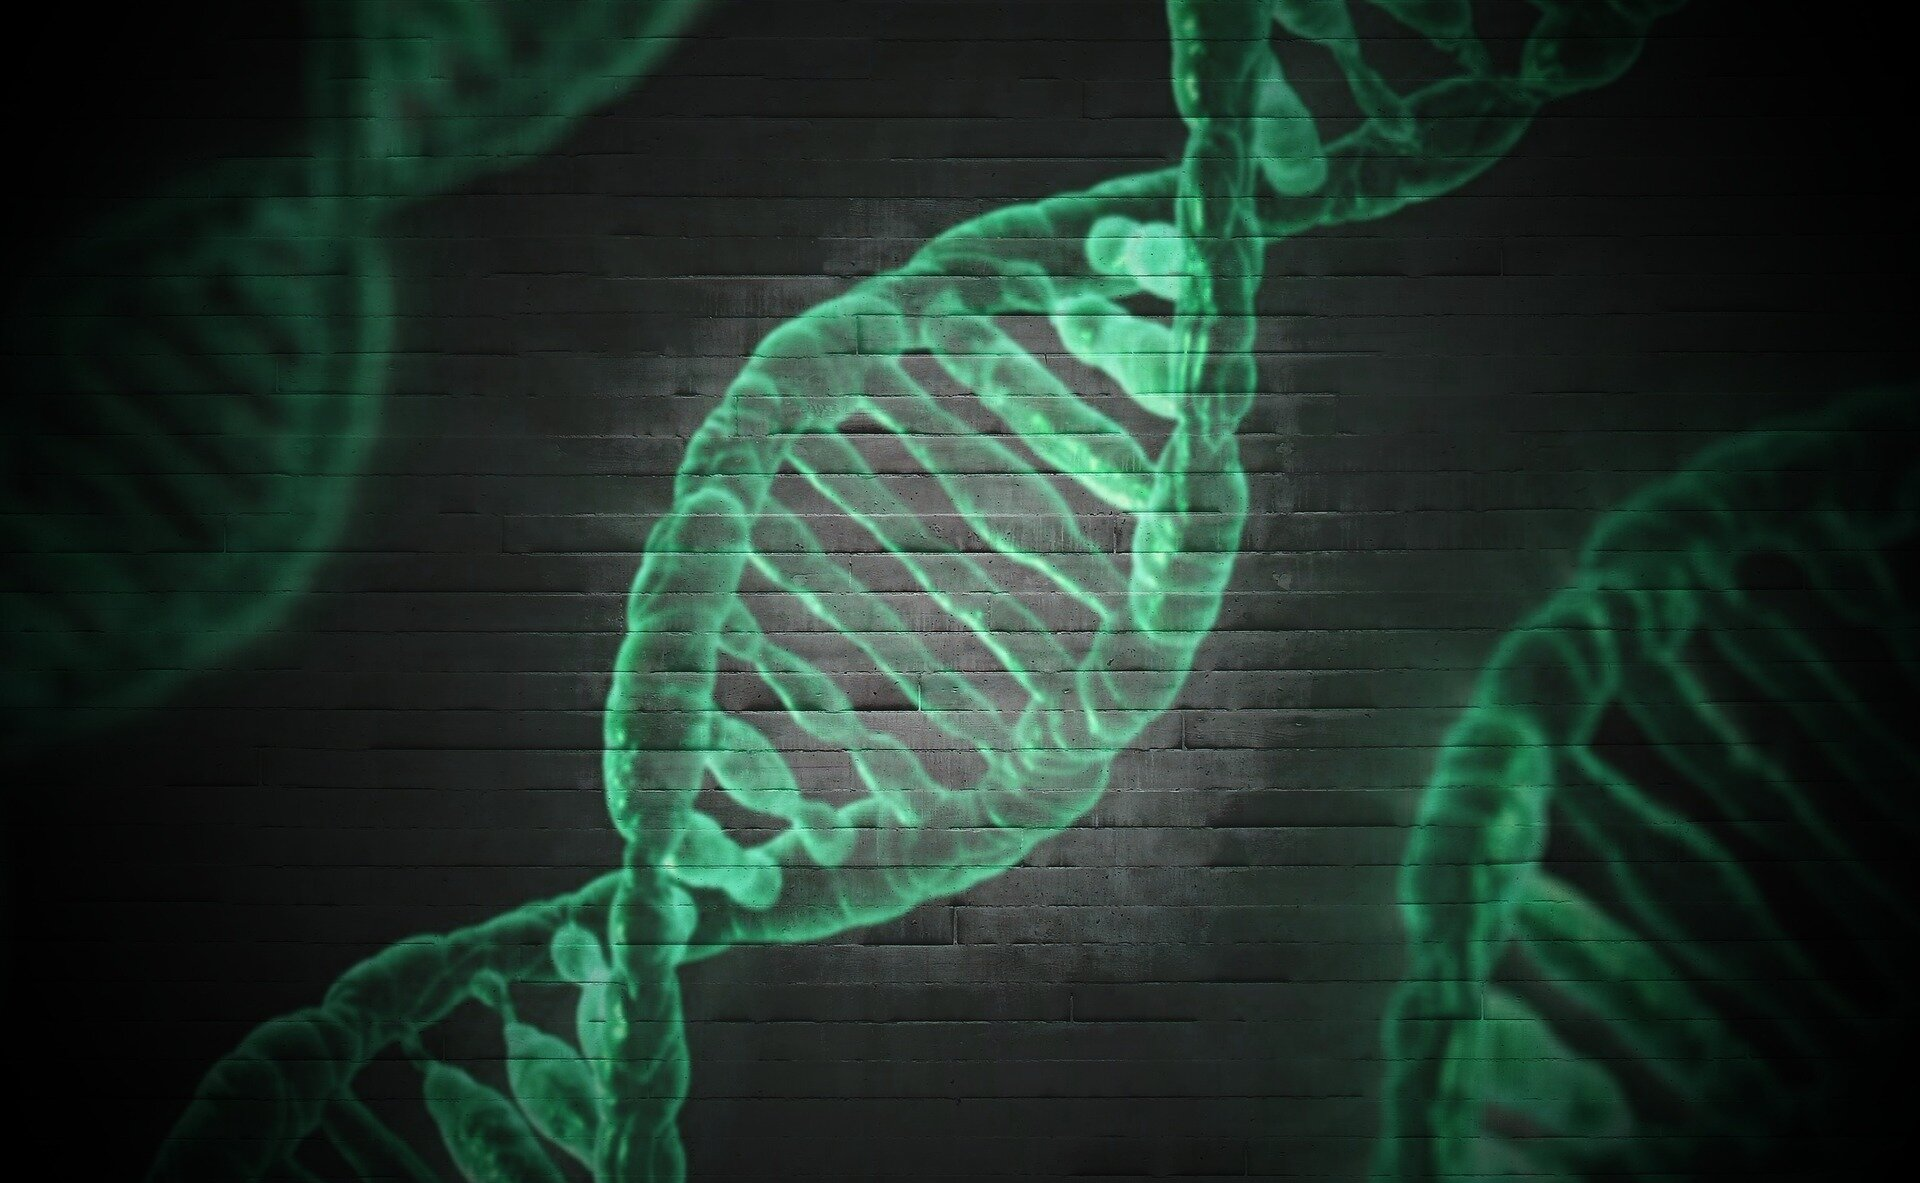 Researchers reveal key information about how genes turn on and off